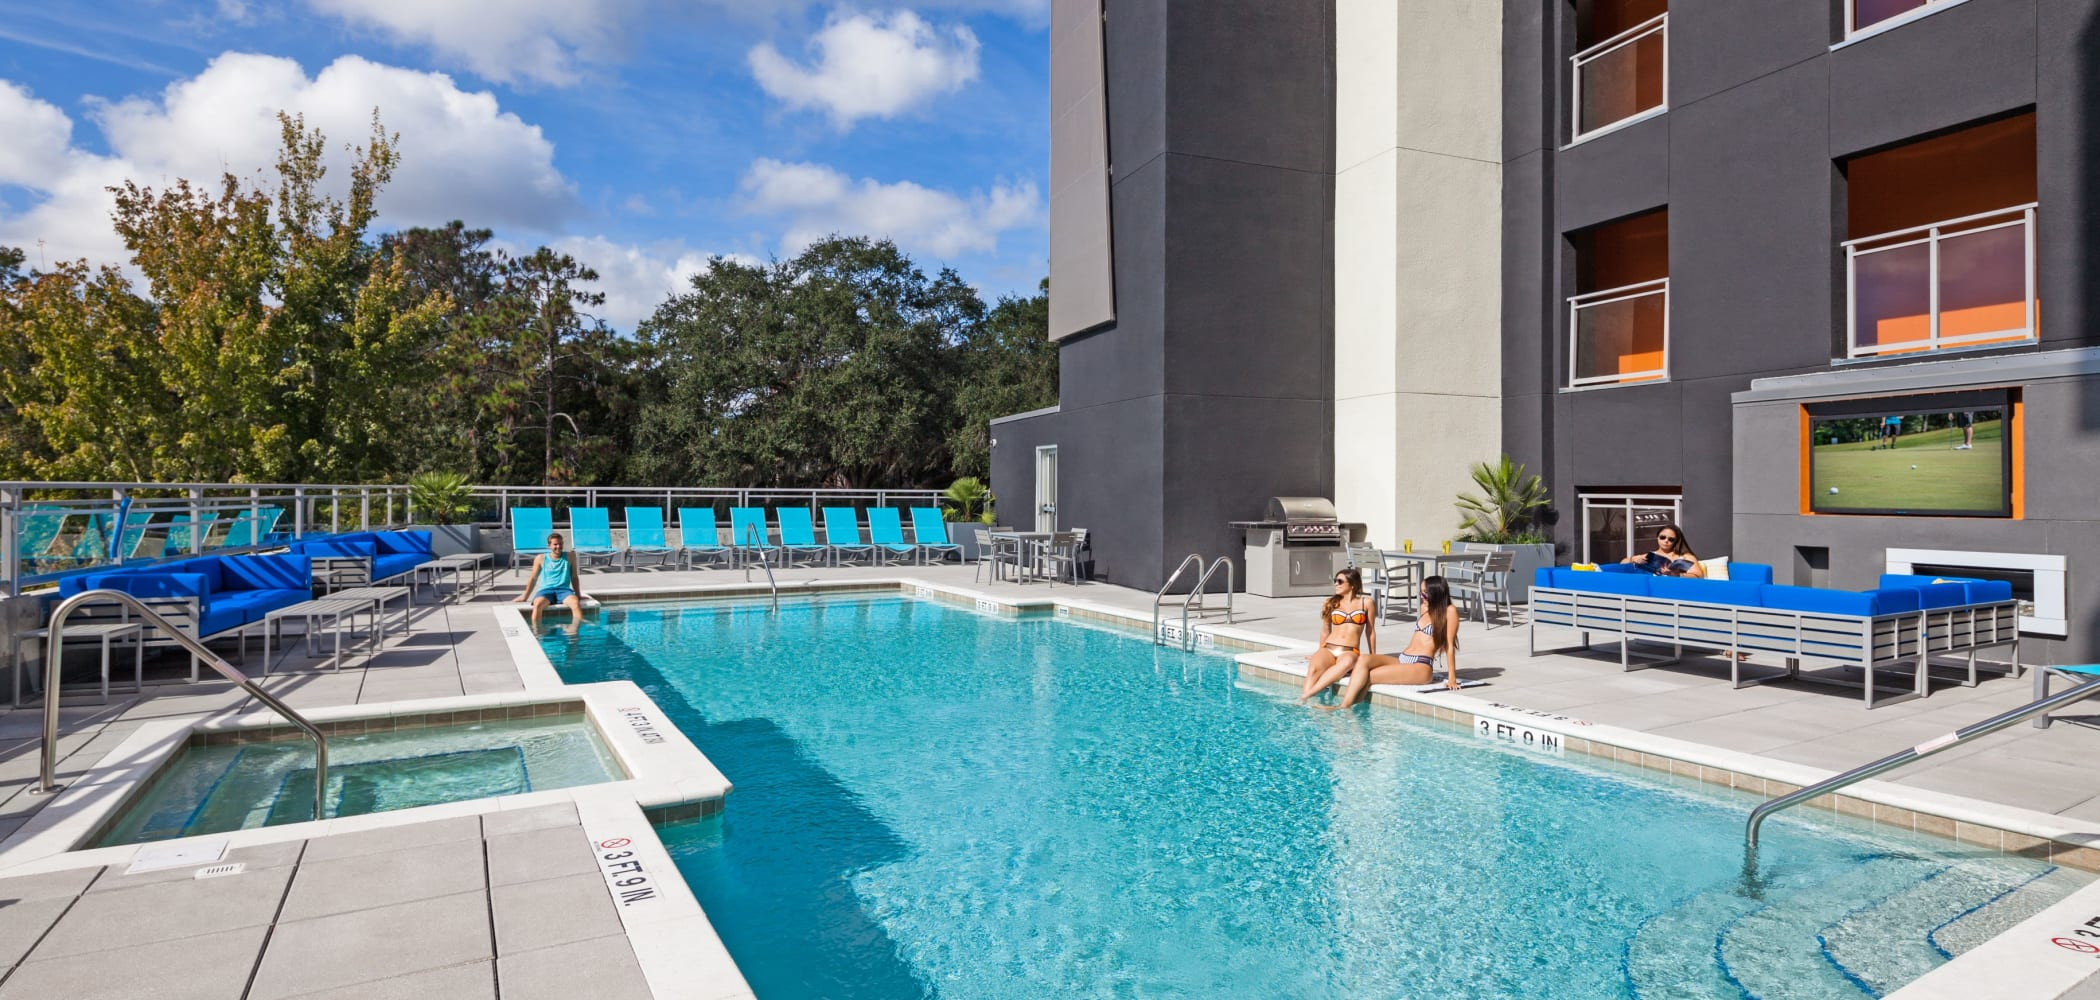 Resort-style swimming pool at Social 28 in Gainesville, Florida